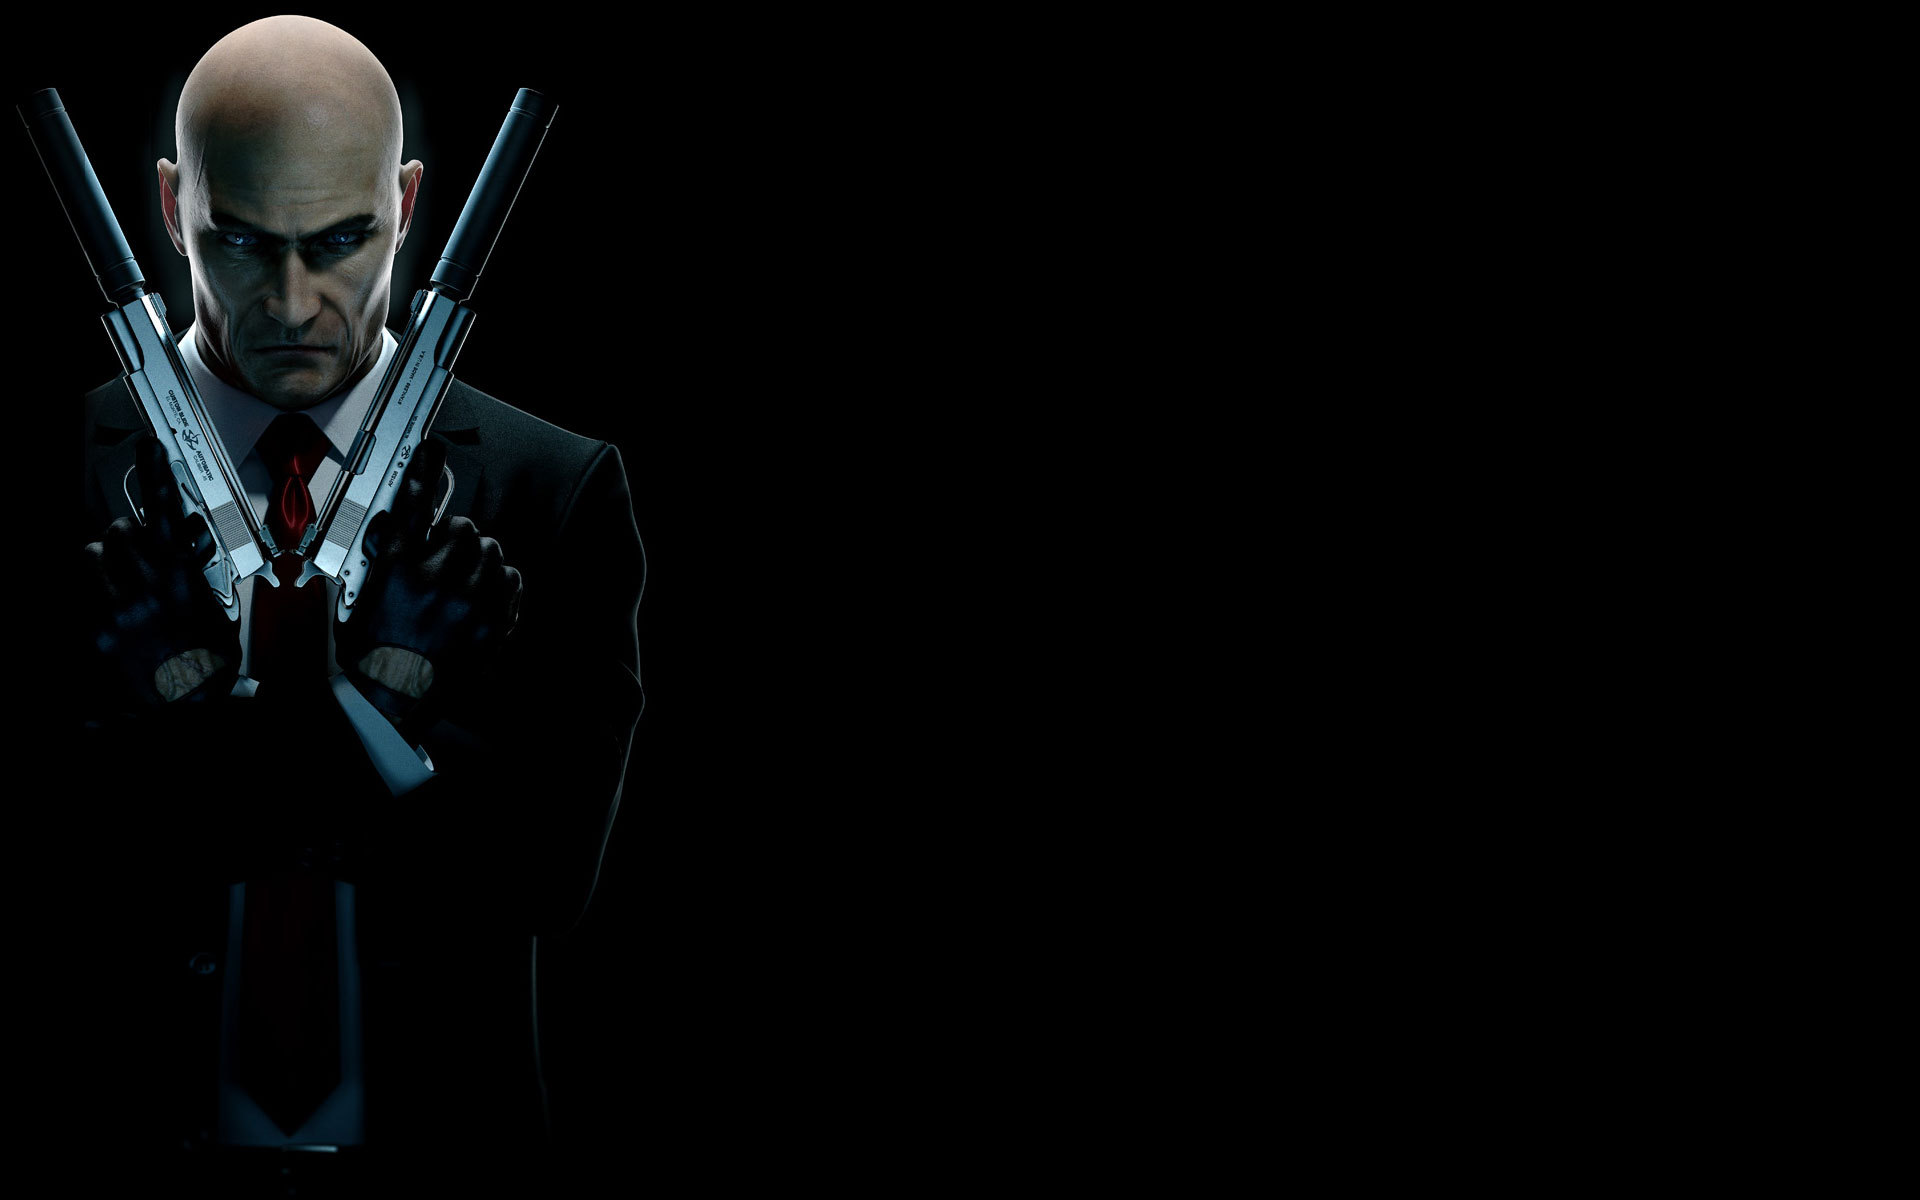 Hitman Absolution Background Angel.jpg